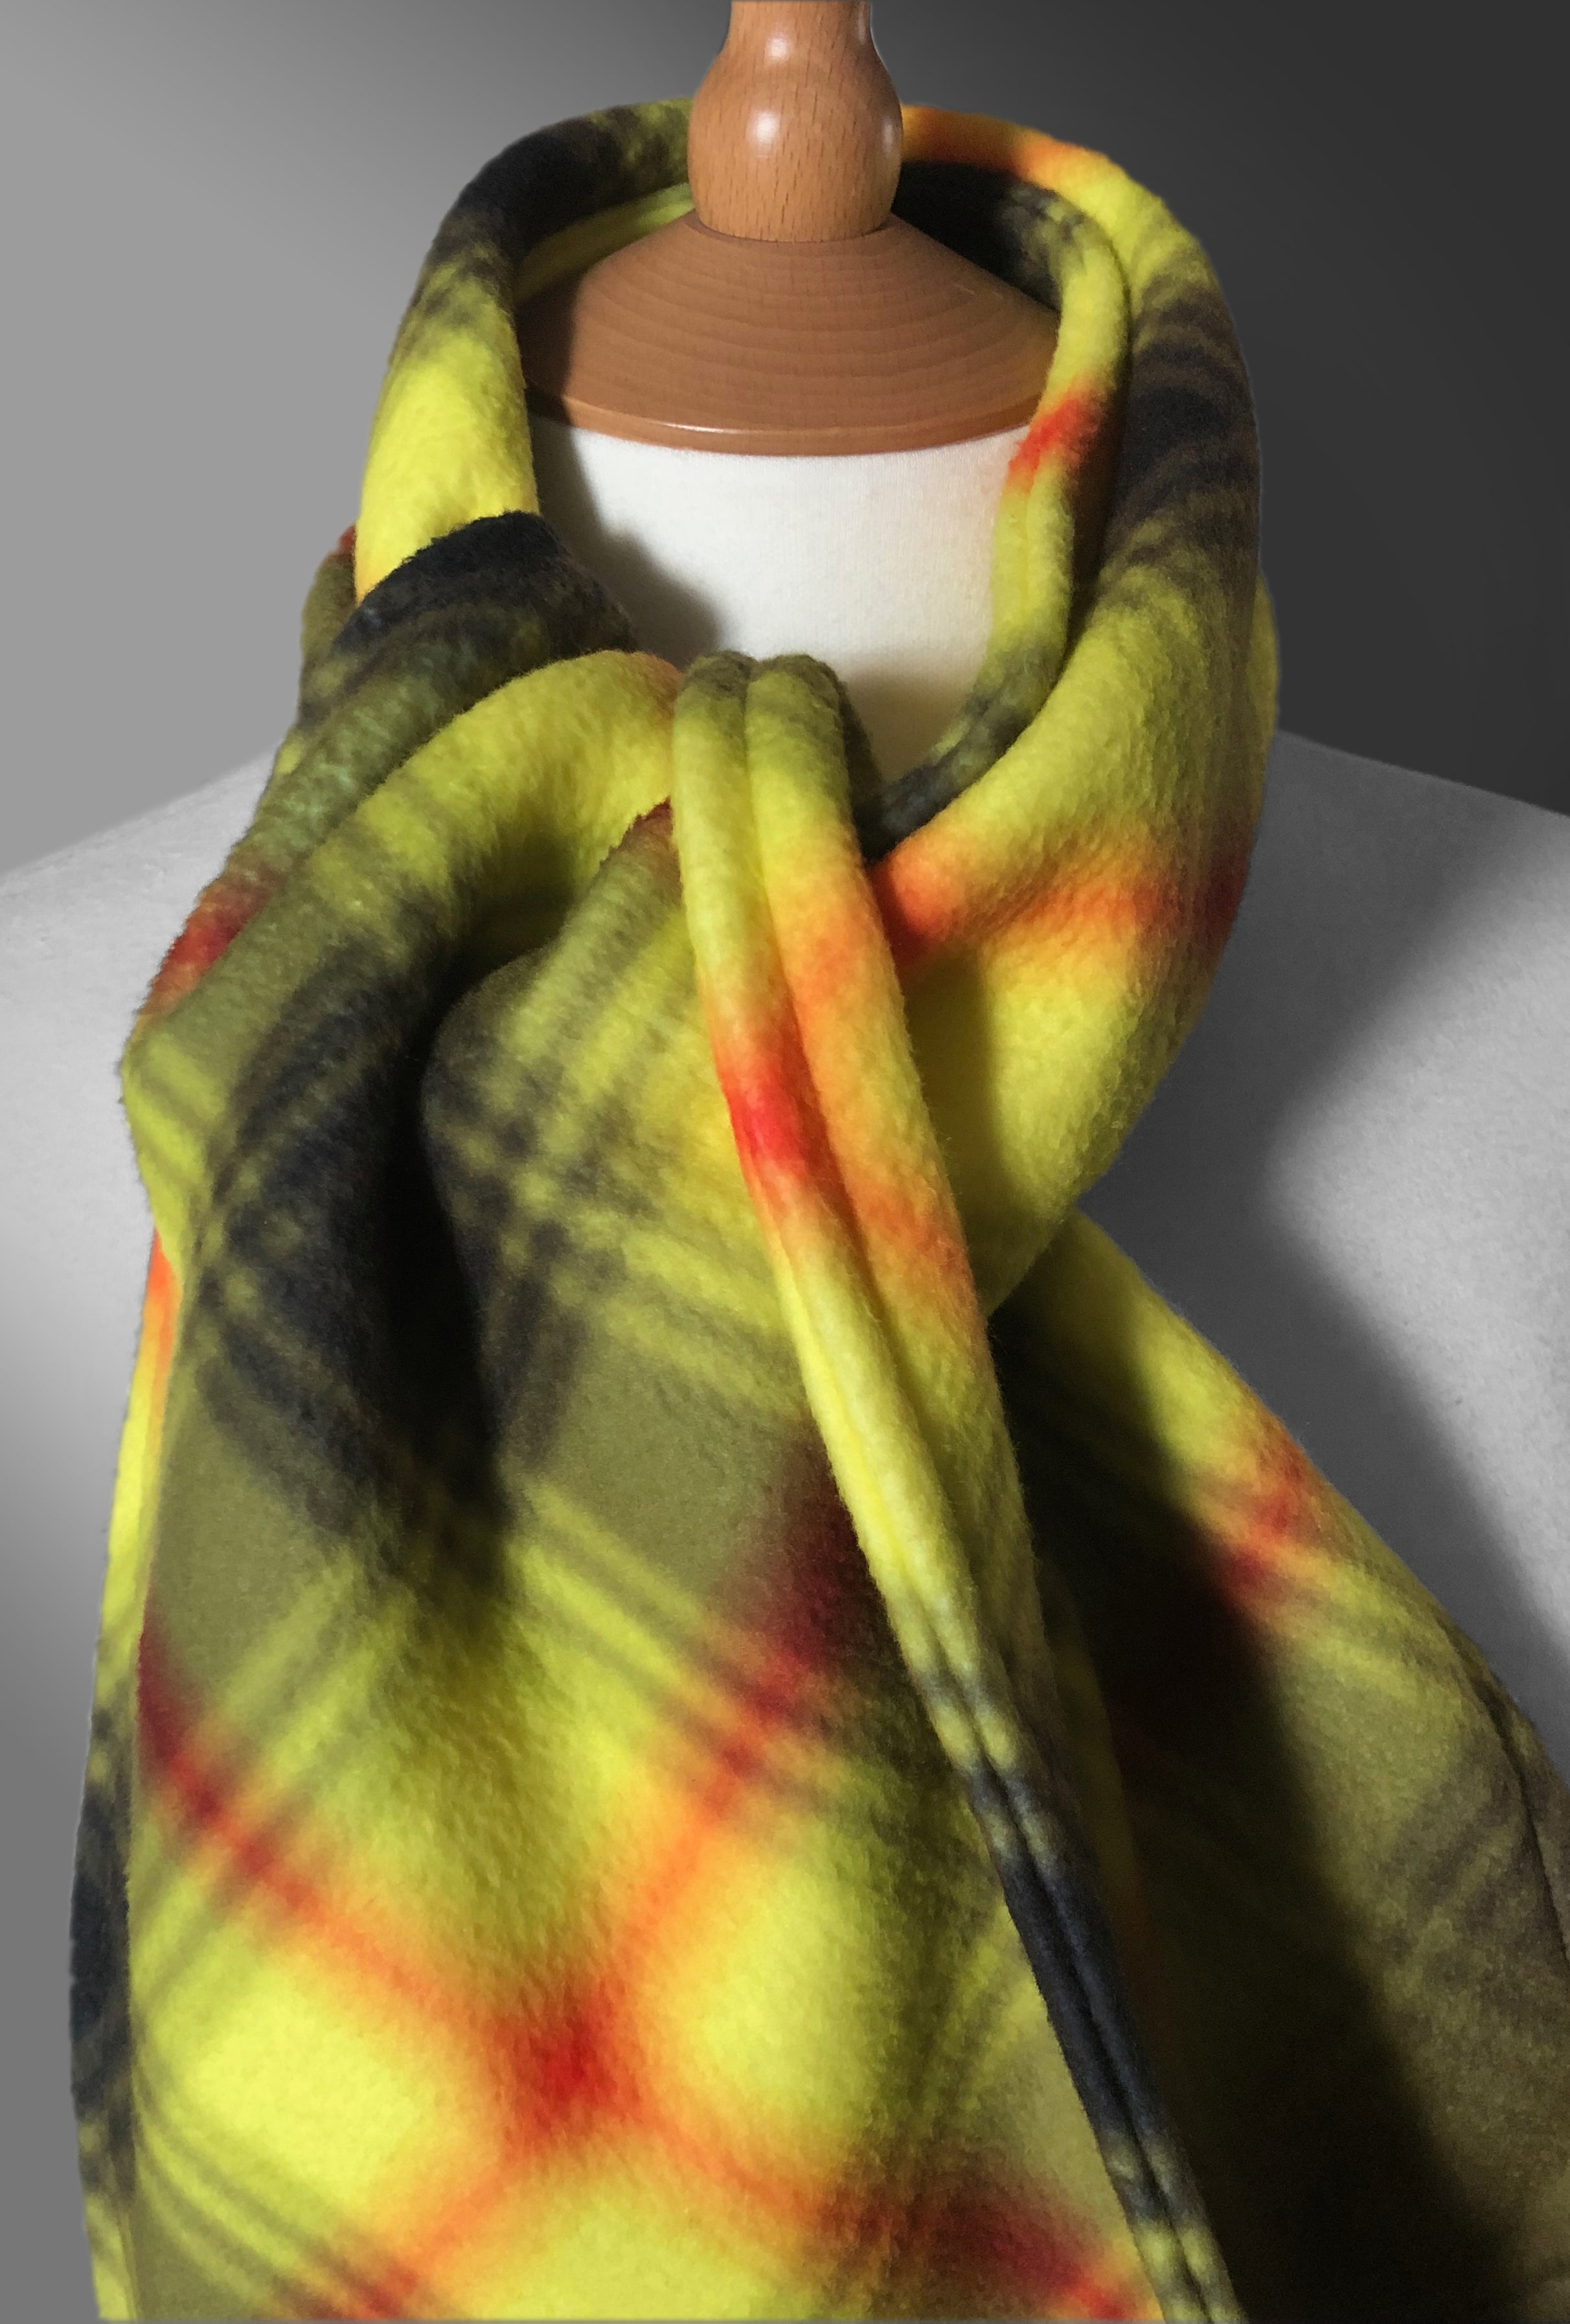 Be Aware tartan fleece scarf - Coronavirus Virohazrd - by the Tartan Artisan, Arbroath